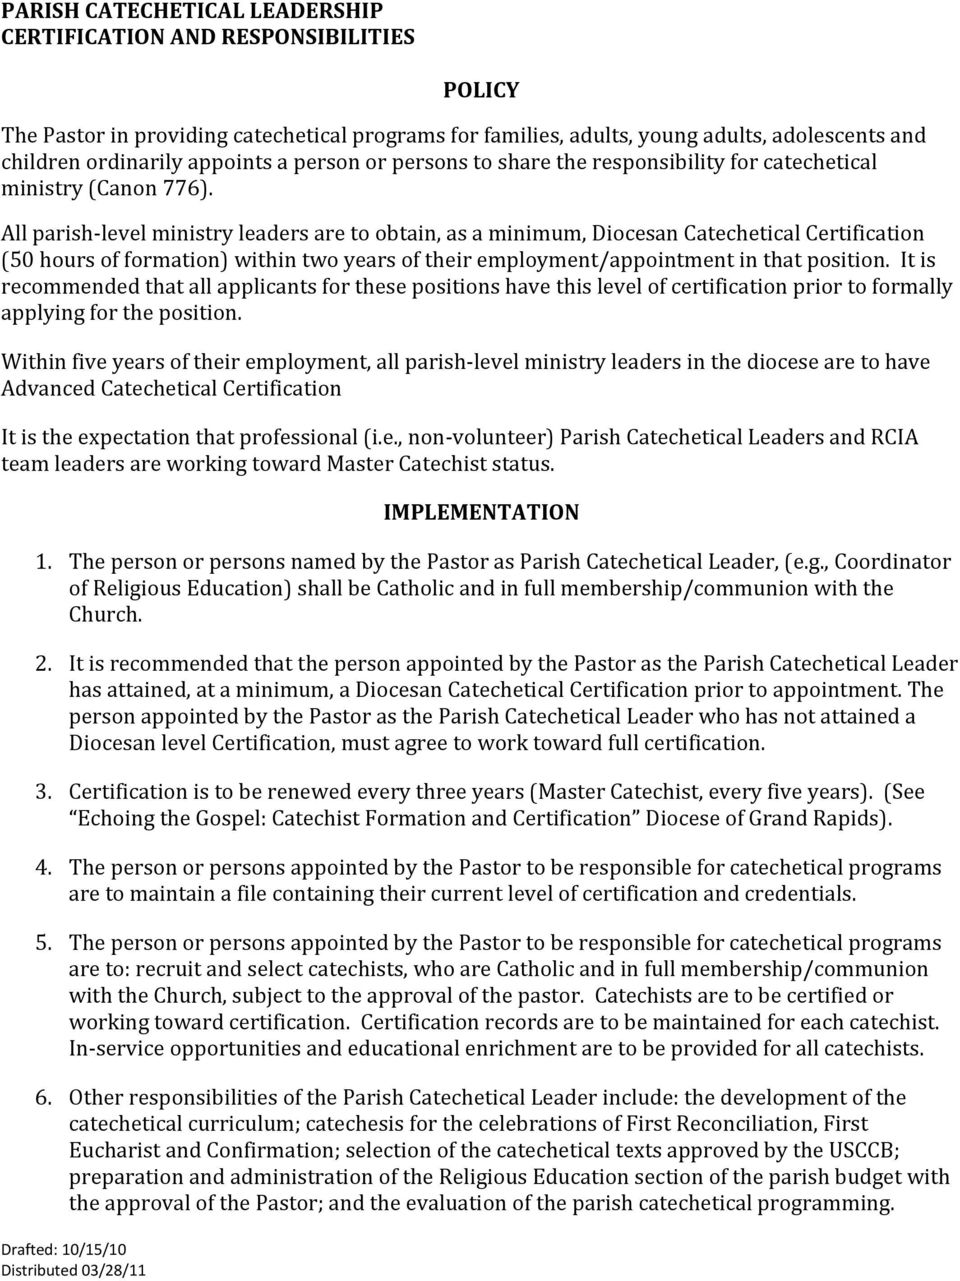 Policy Implementation Pdf